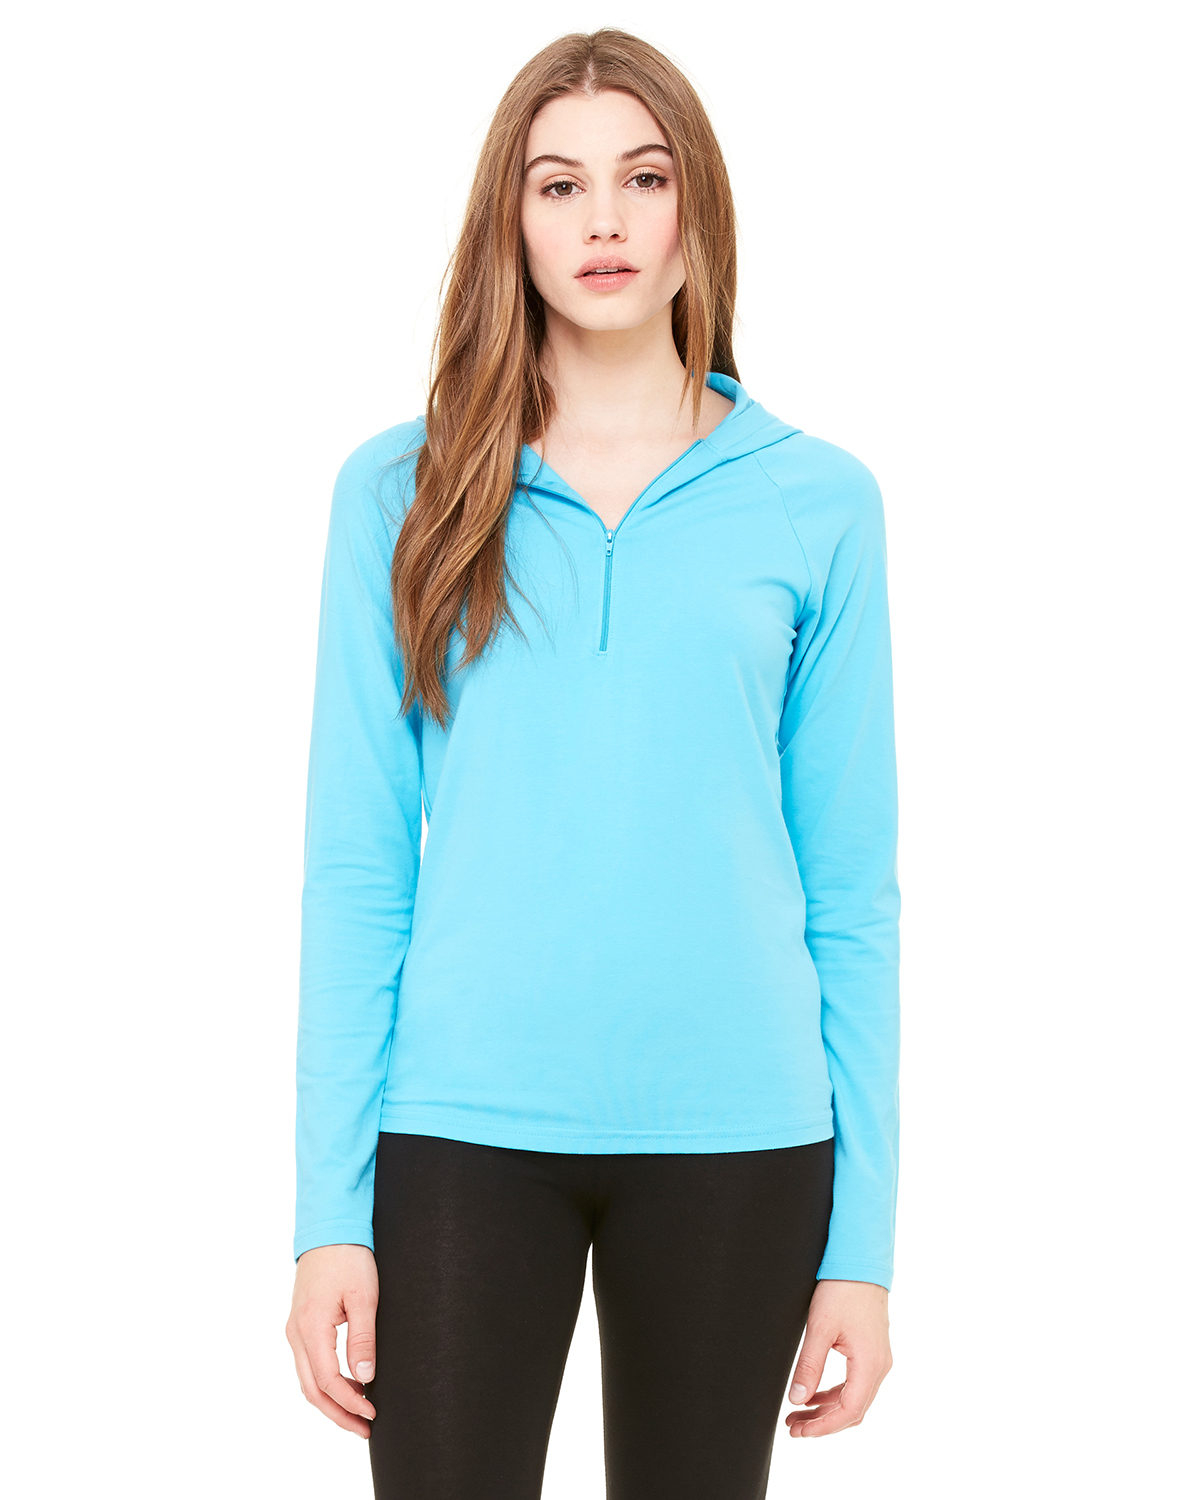 Bella 875  Women's Cotton/Spandex Half Zip Hooded Pullover